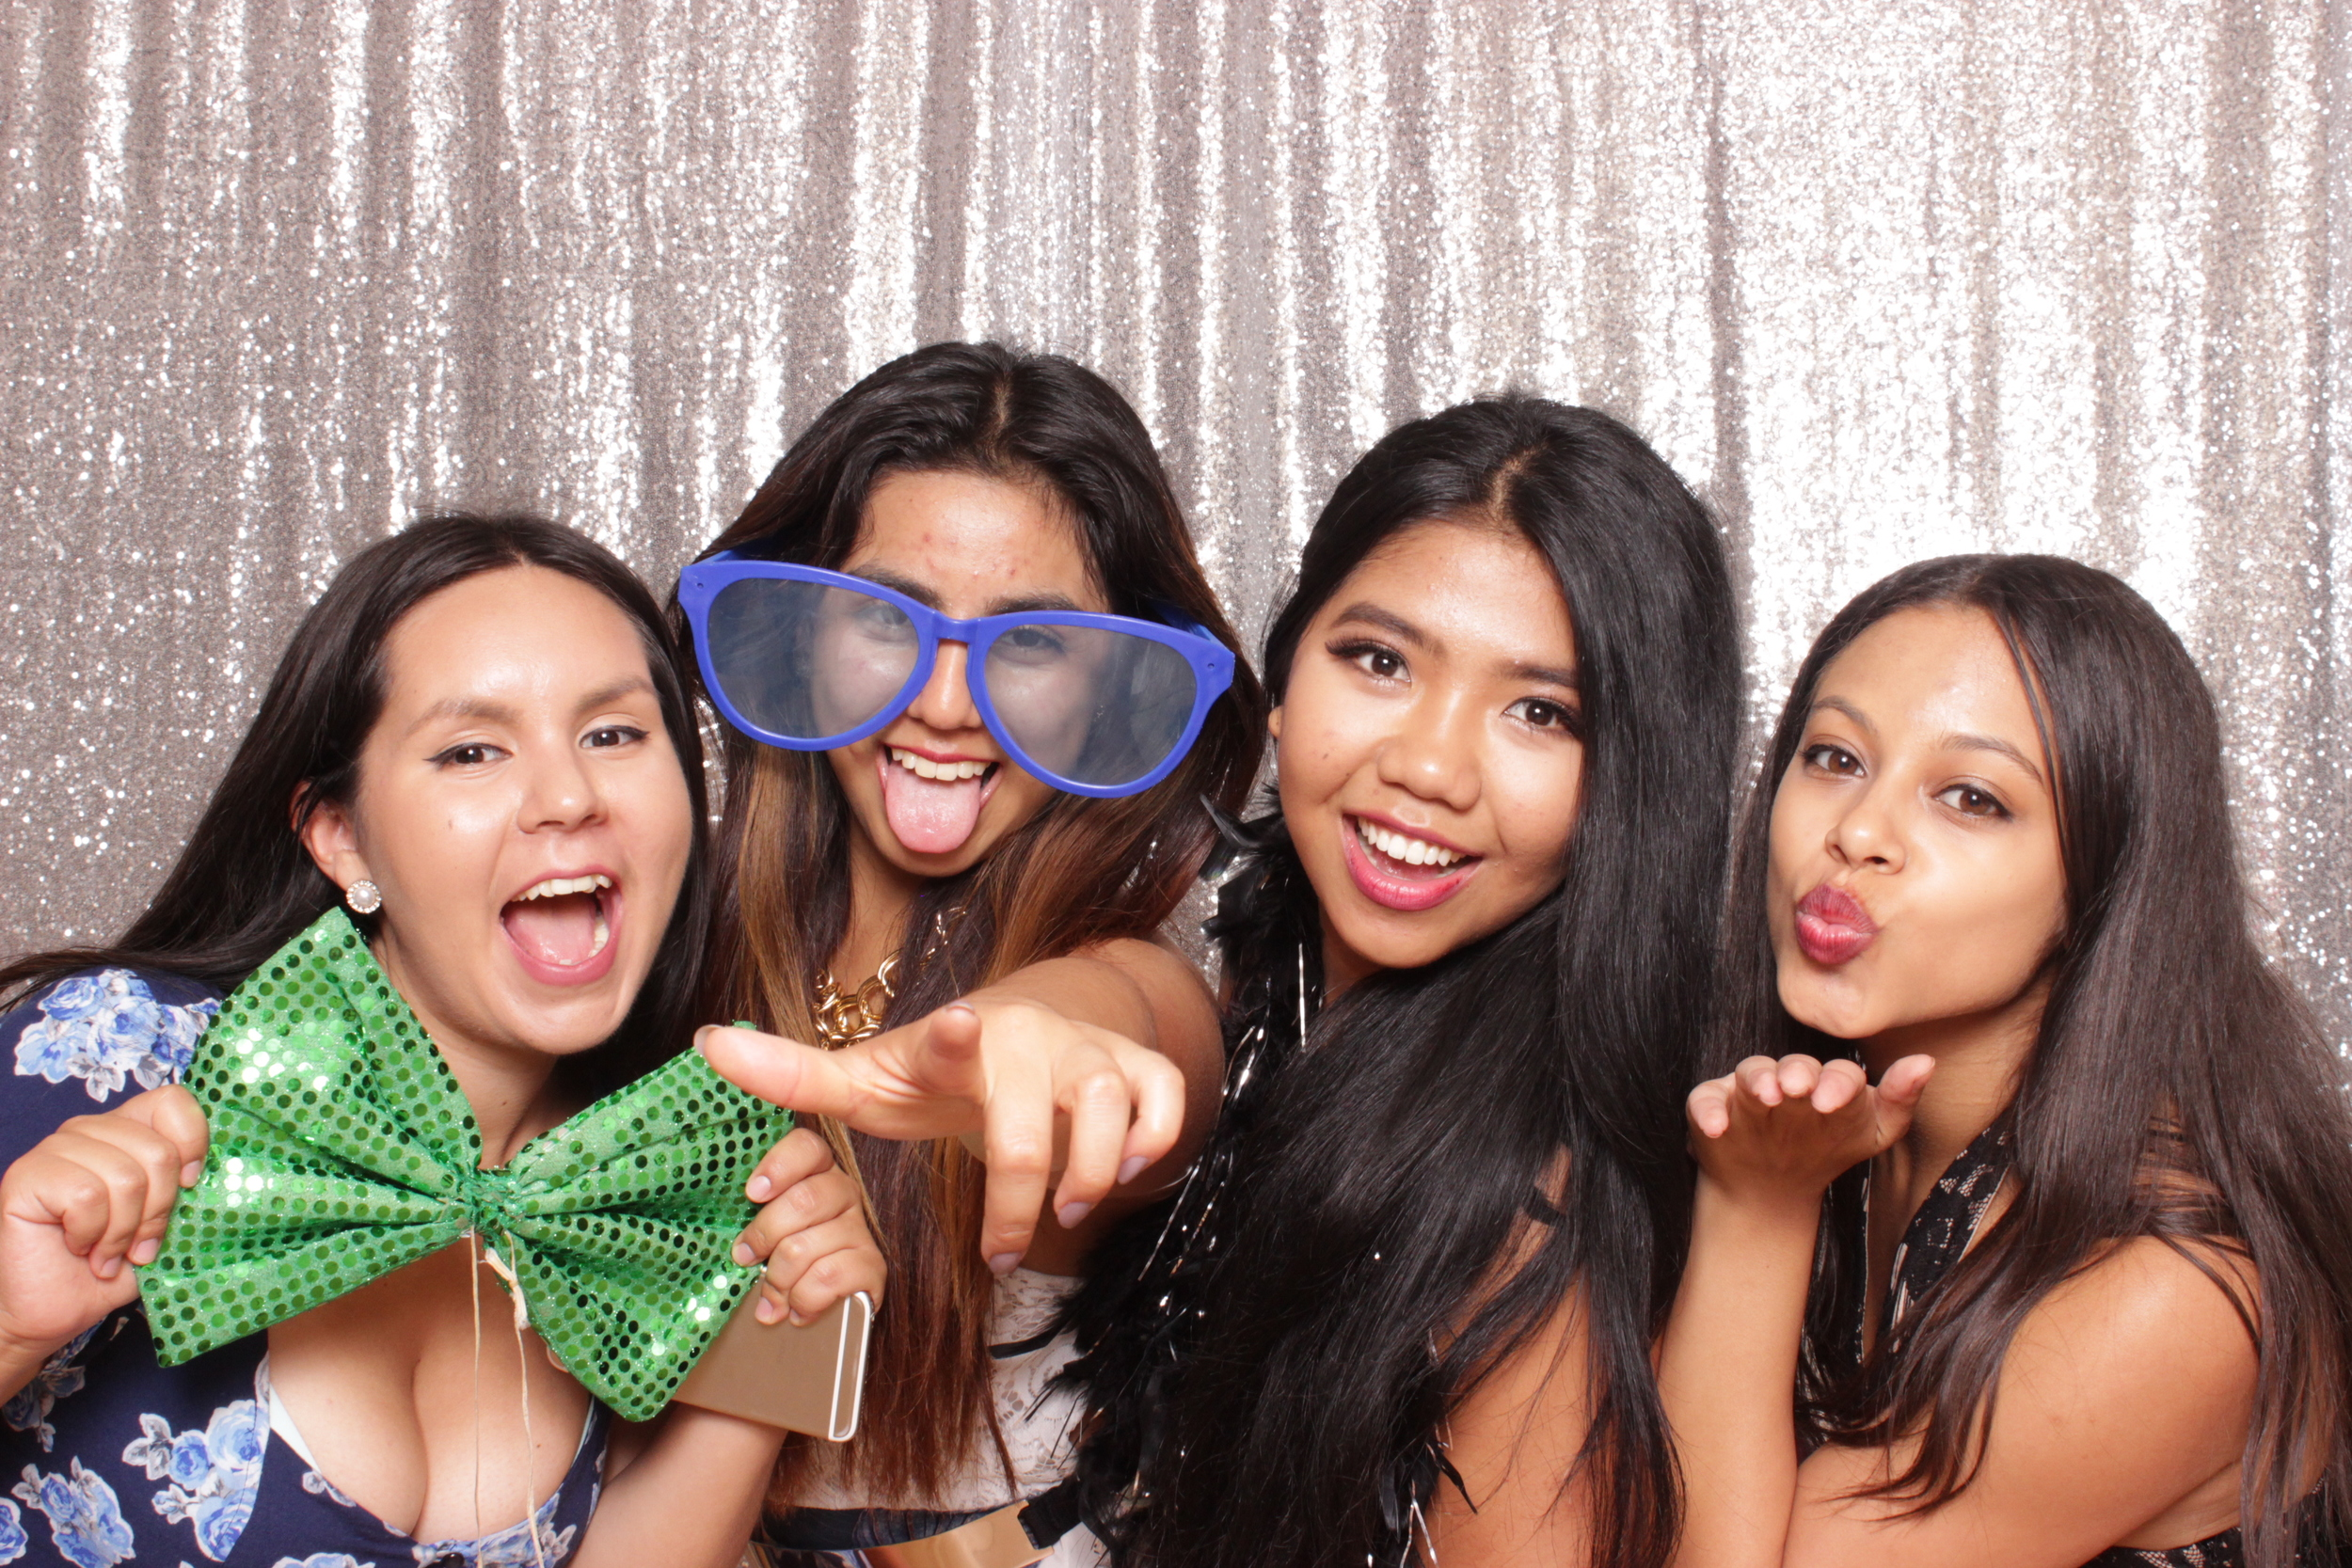 chico-photo-booth-rental-chico-state-sorority-spring-formal